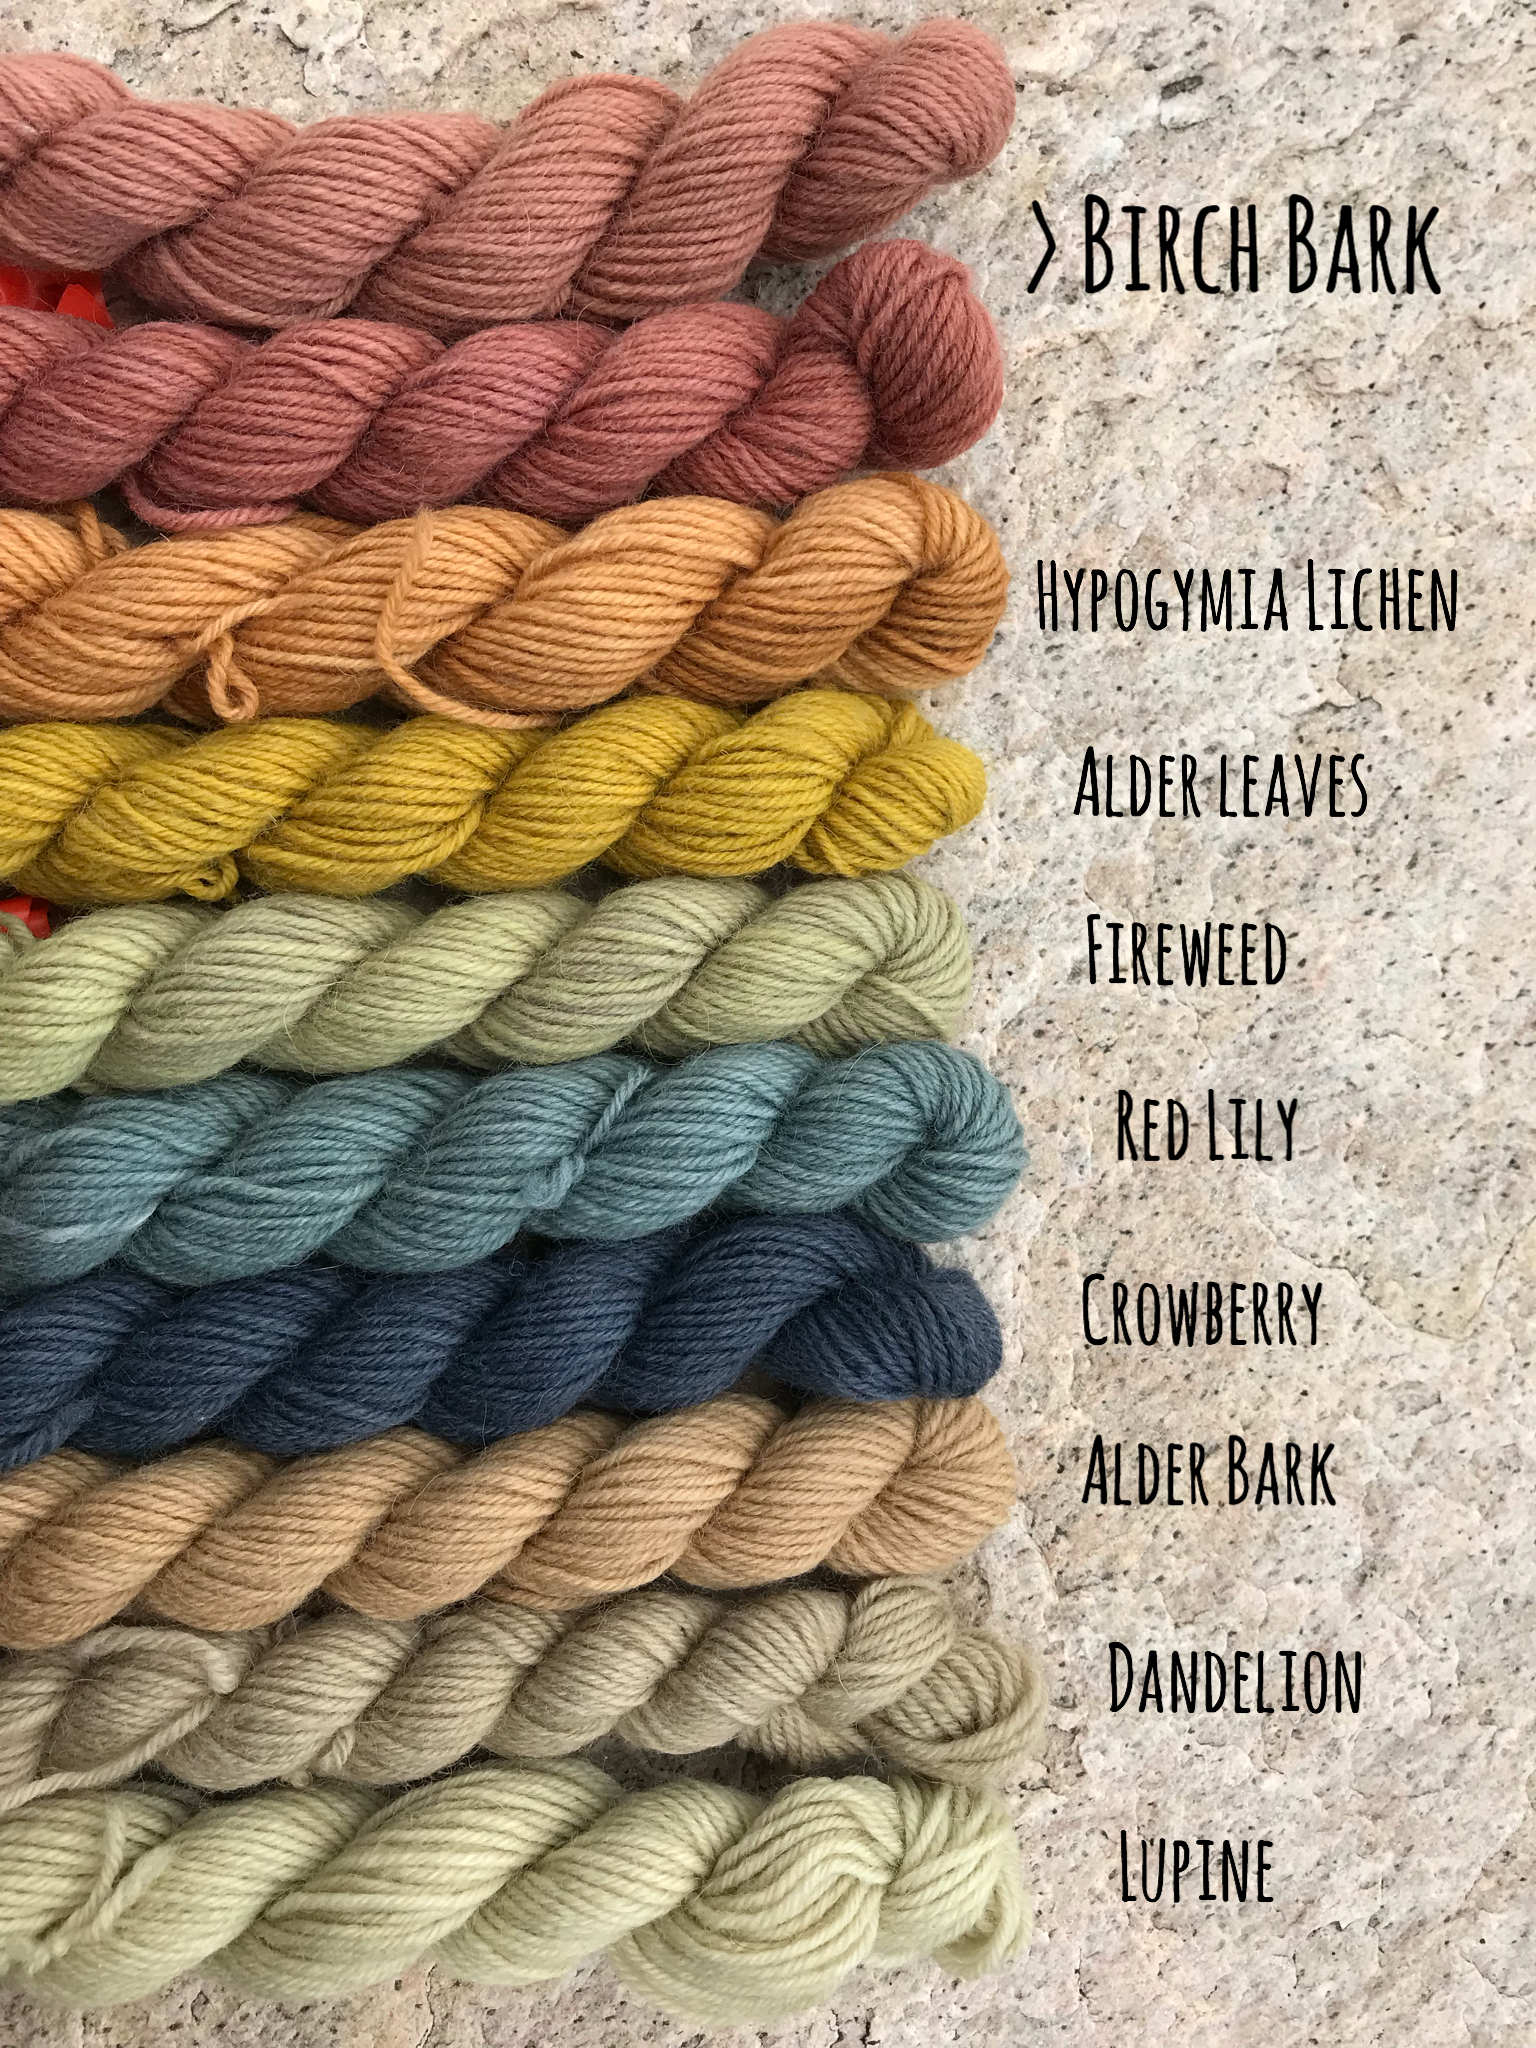 Natural dyeing yarn colors